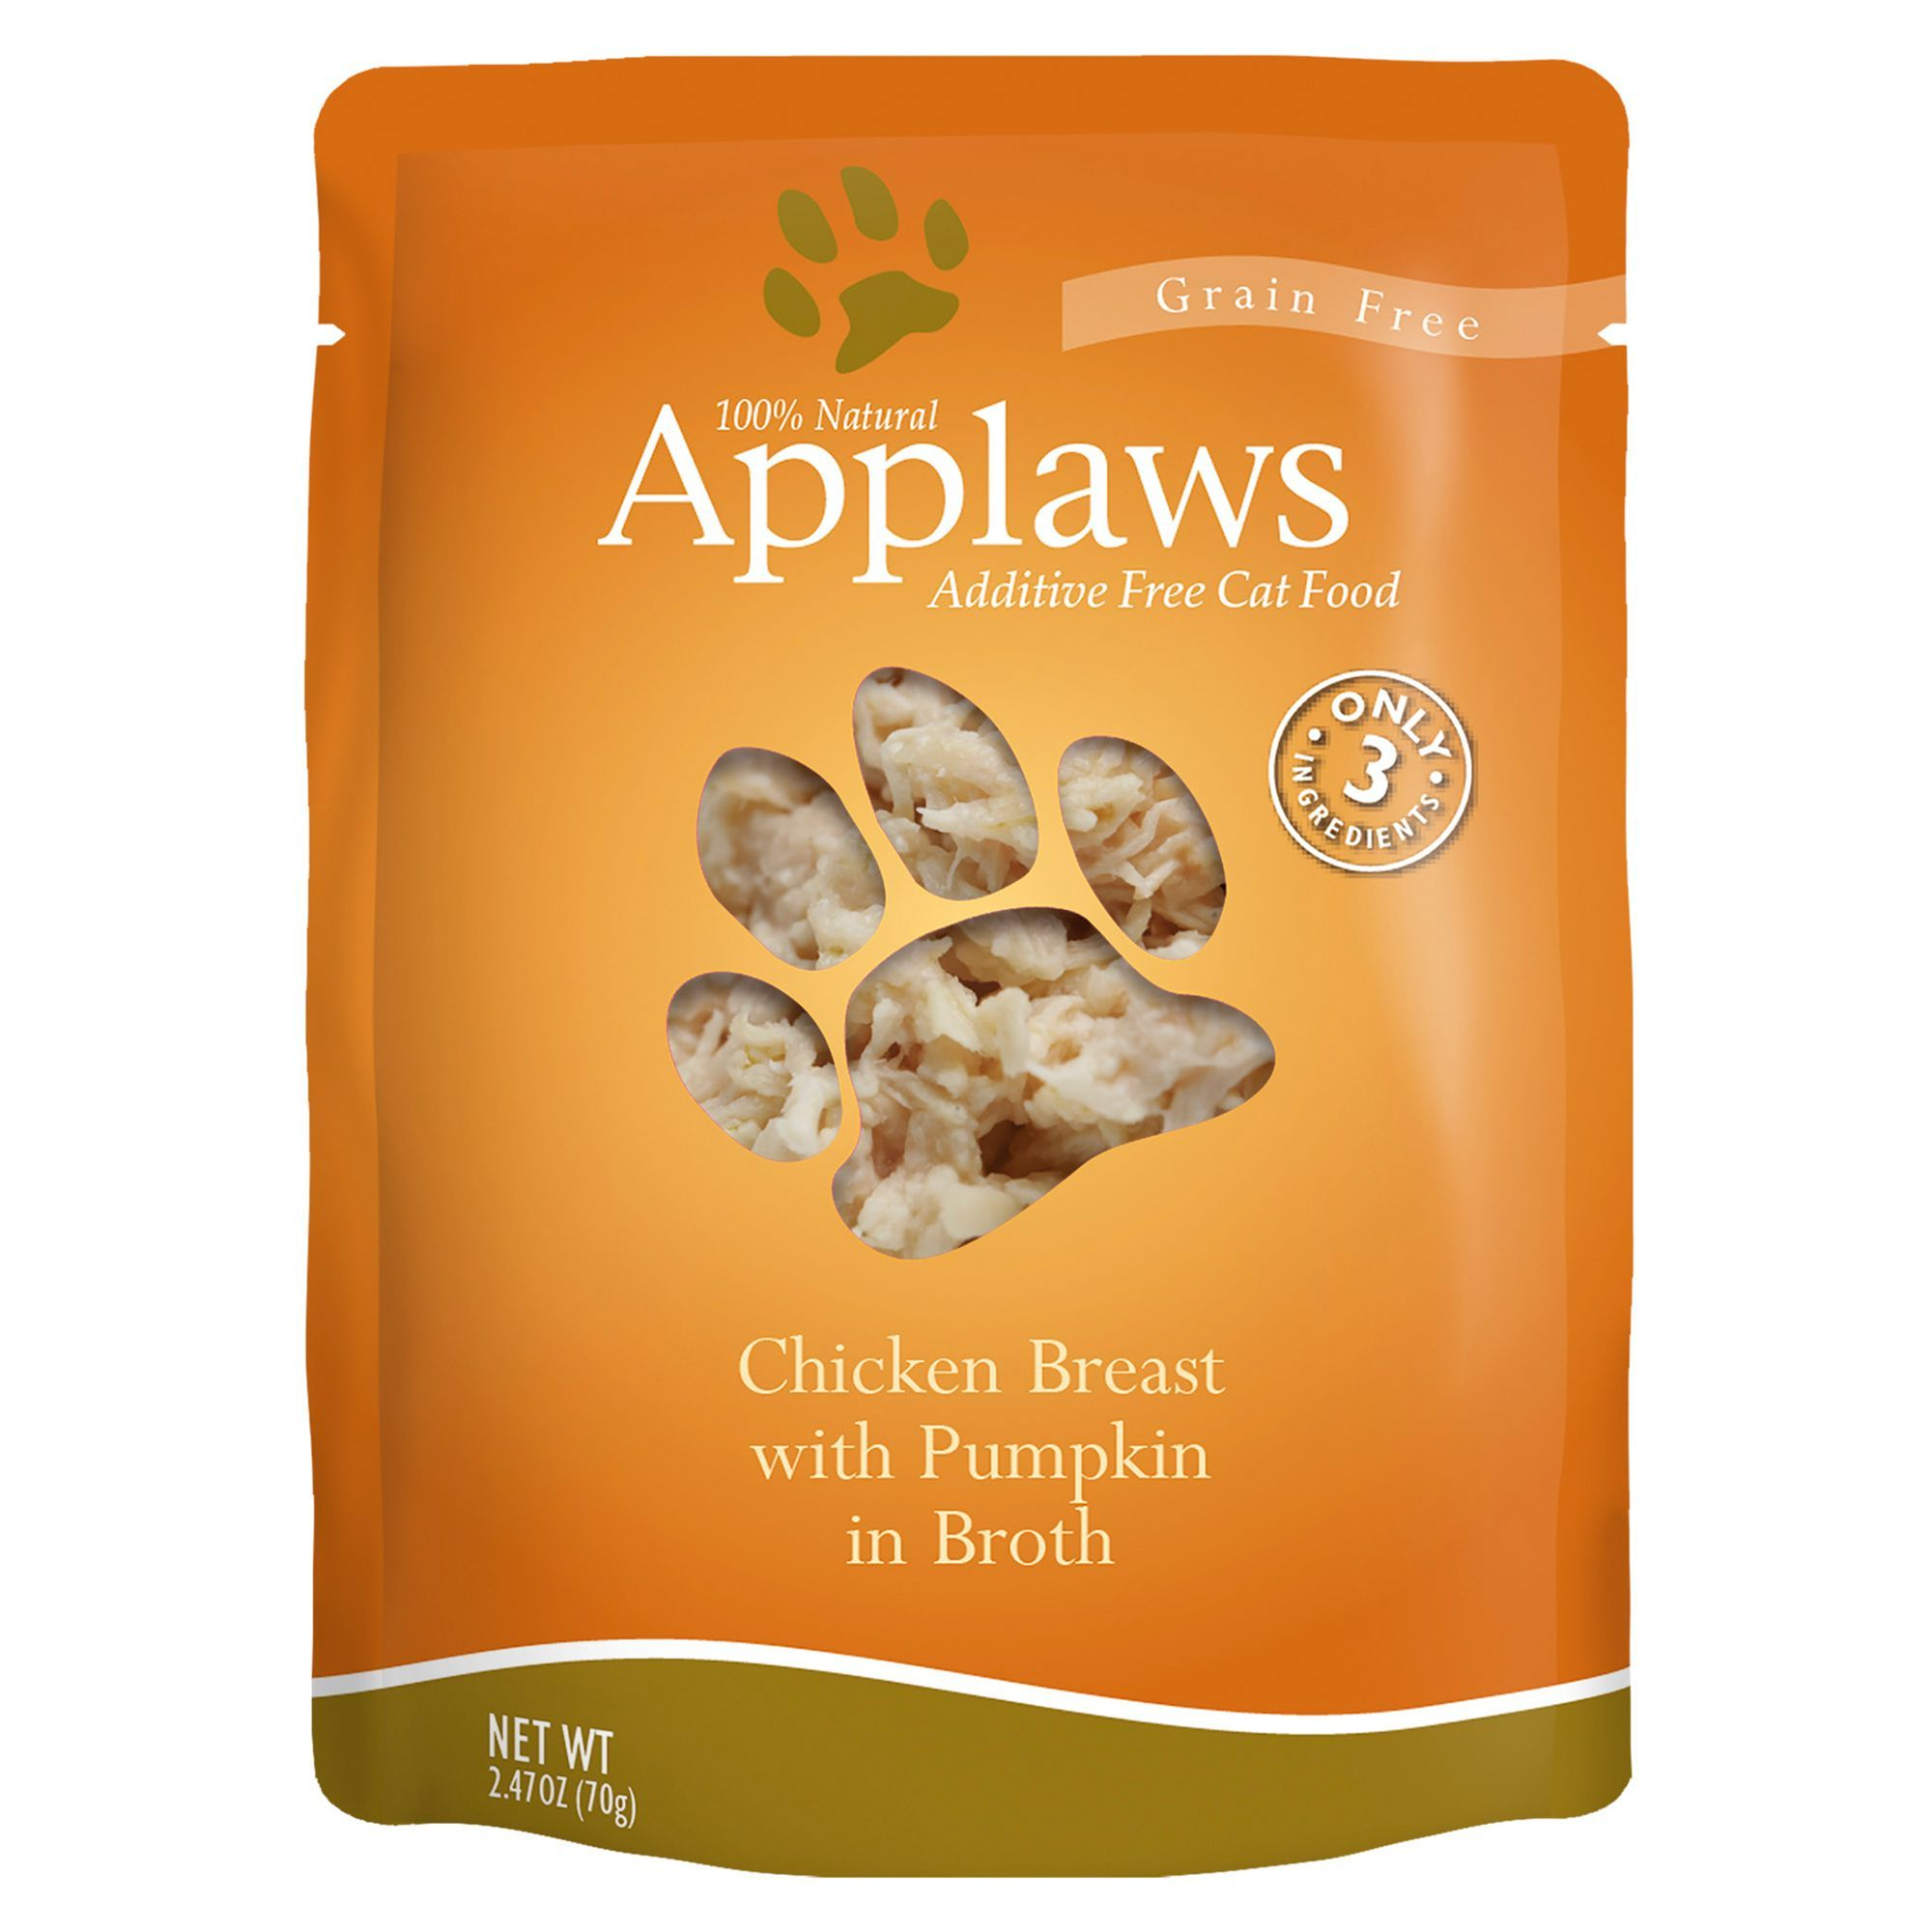 Applaws Wet Cat Food, Natural, Limited Ingredient, Grain